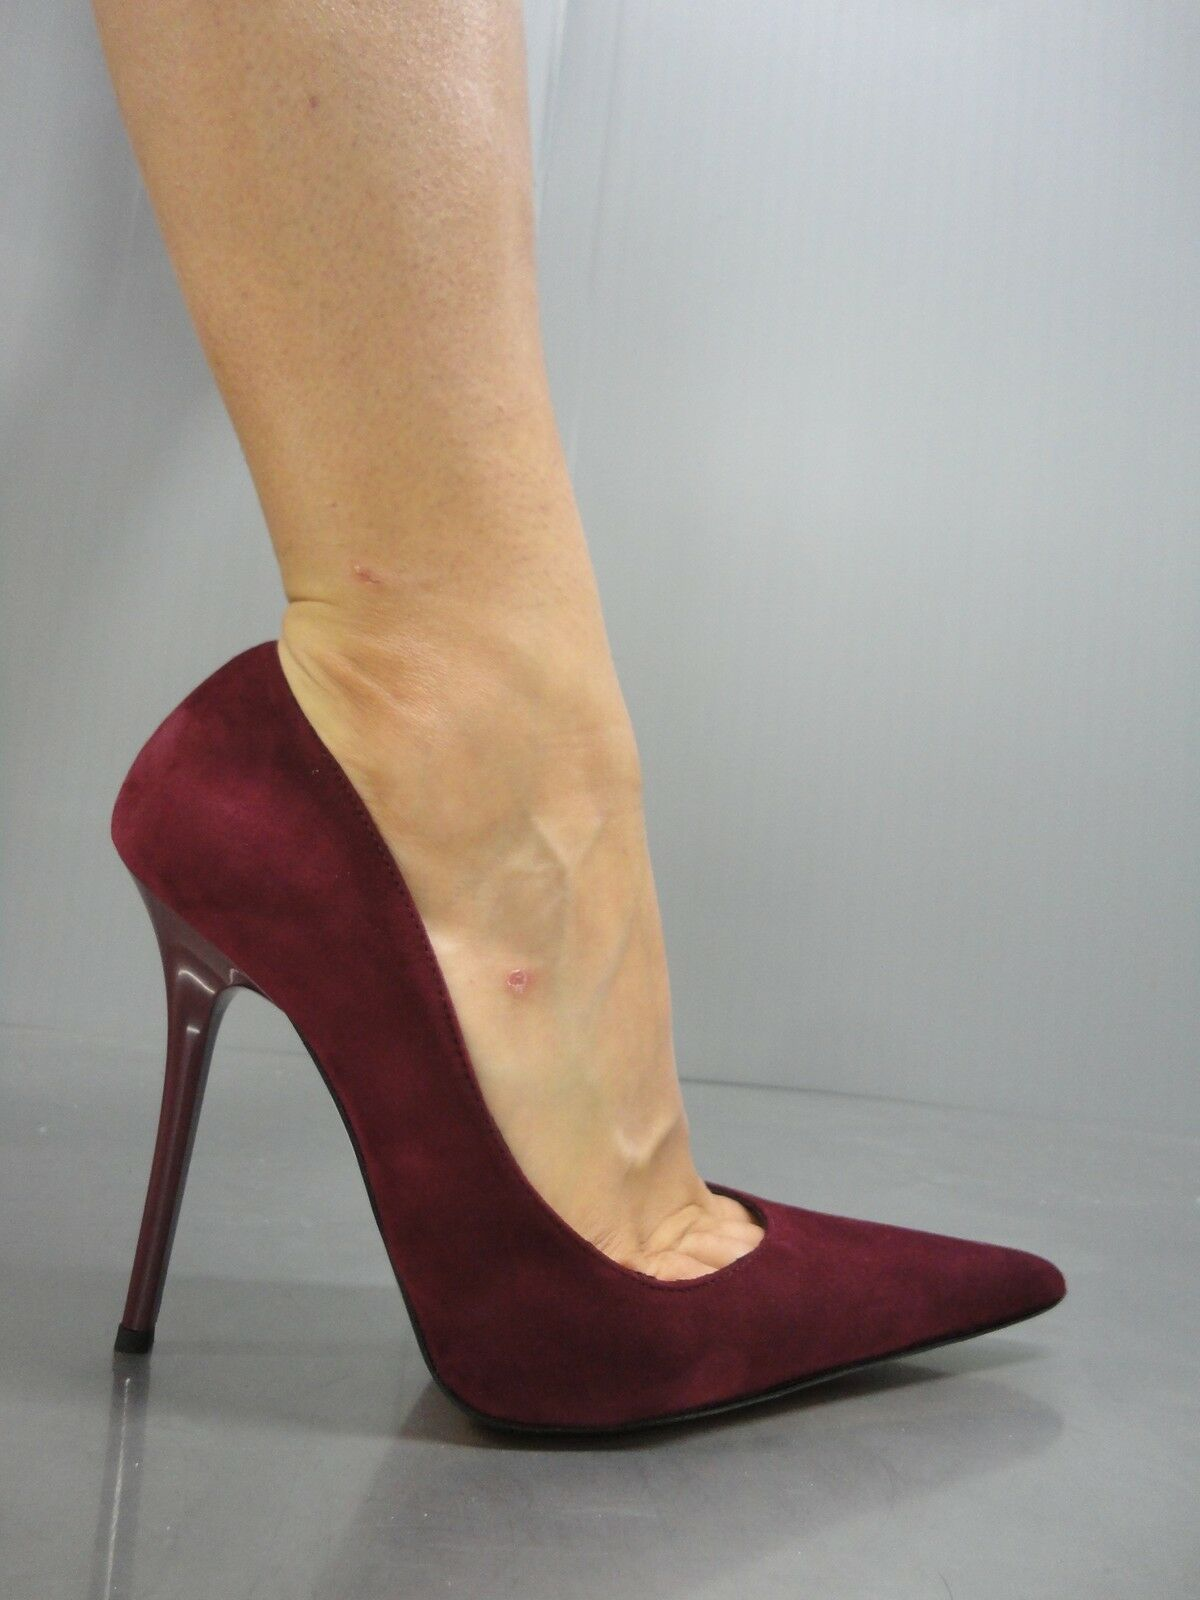 MORI MADE IN ITALY POINTY HIGH HEELS PUMPS SCHUHE SCHUHE SCHUHE LEATHER DECOLTE BORDEAUX 38 5c4fd0